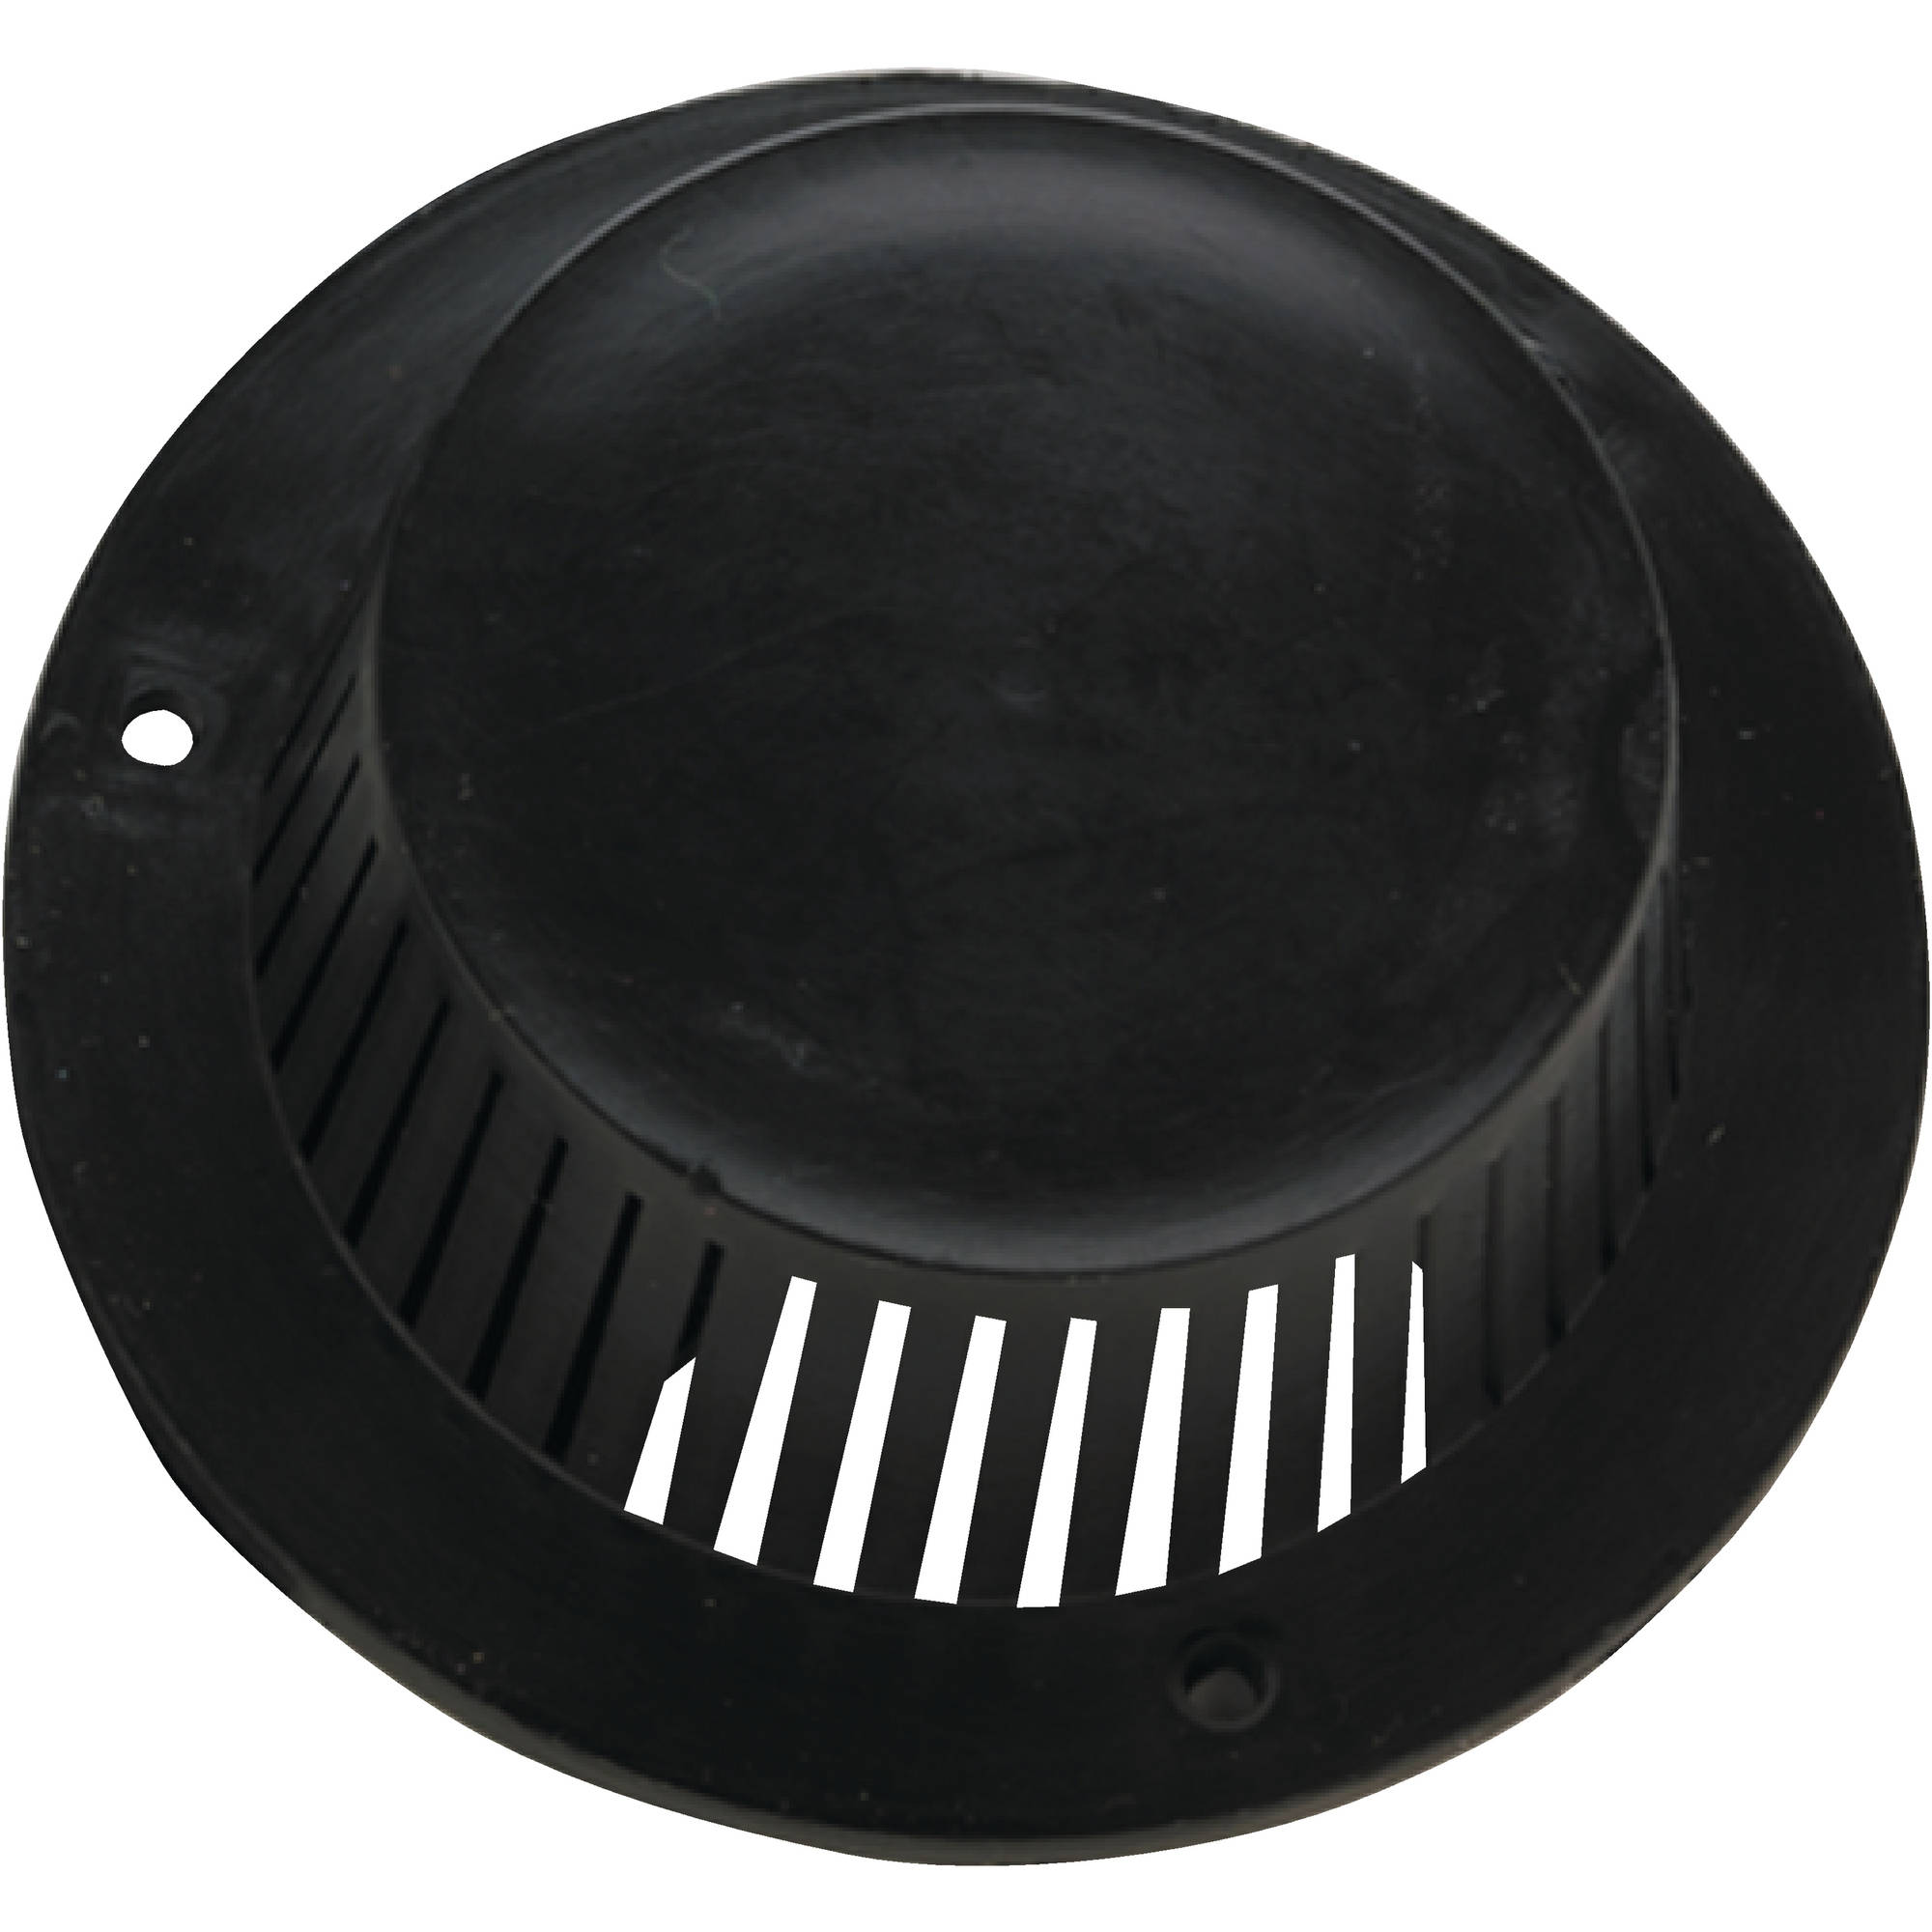 "T-H Marine Aerator Filter Only fits Over 3 4"" or 1-1 8"" Fittings by T-H Marine Supplies"